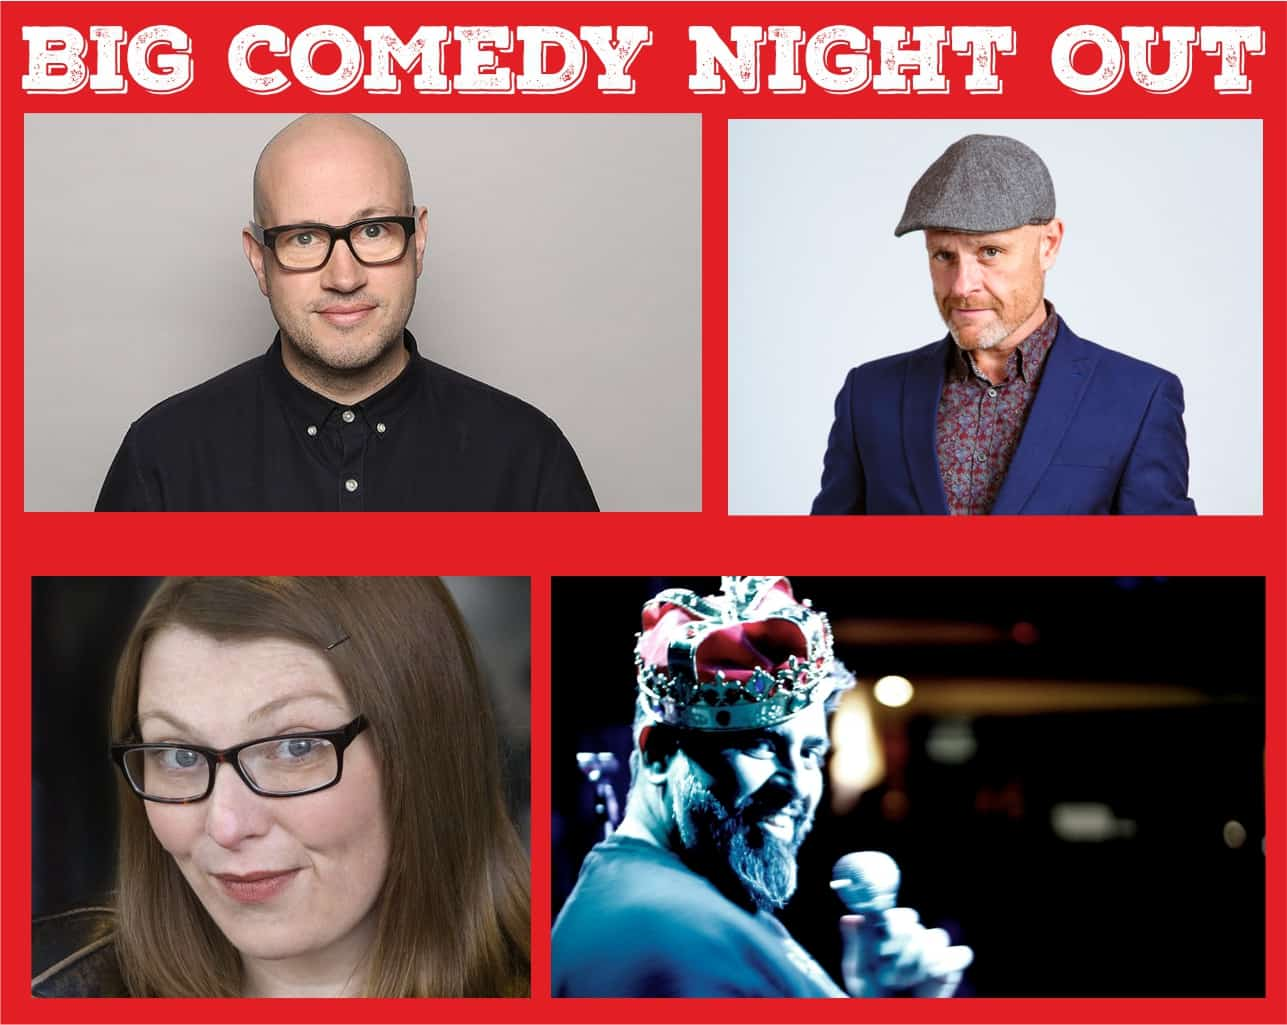 BIG COMEDY NIGHT OUT